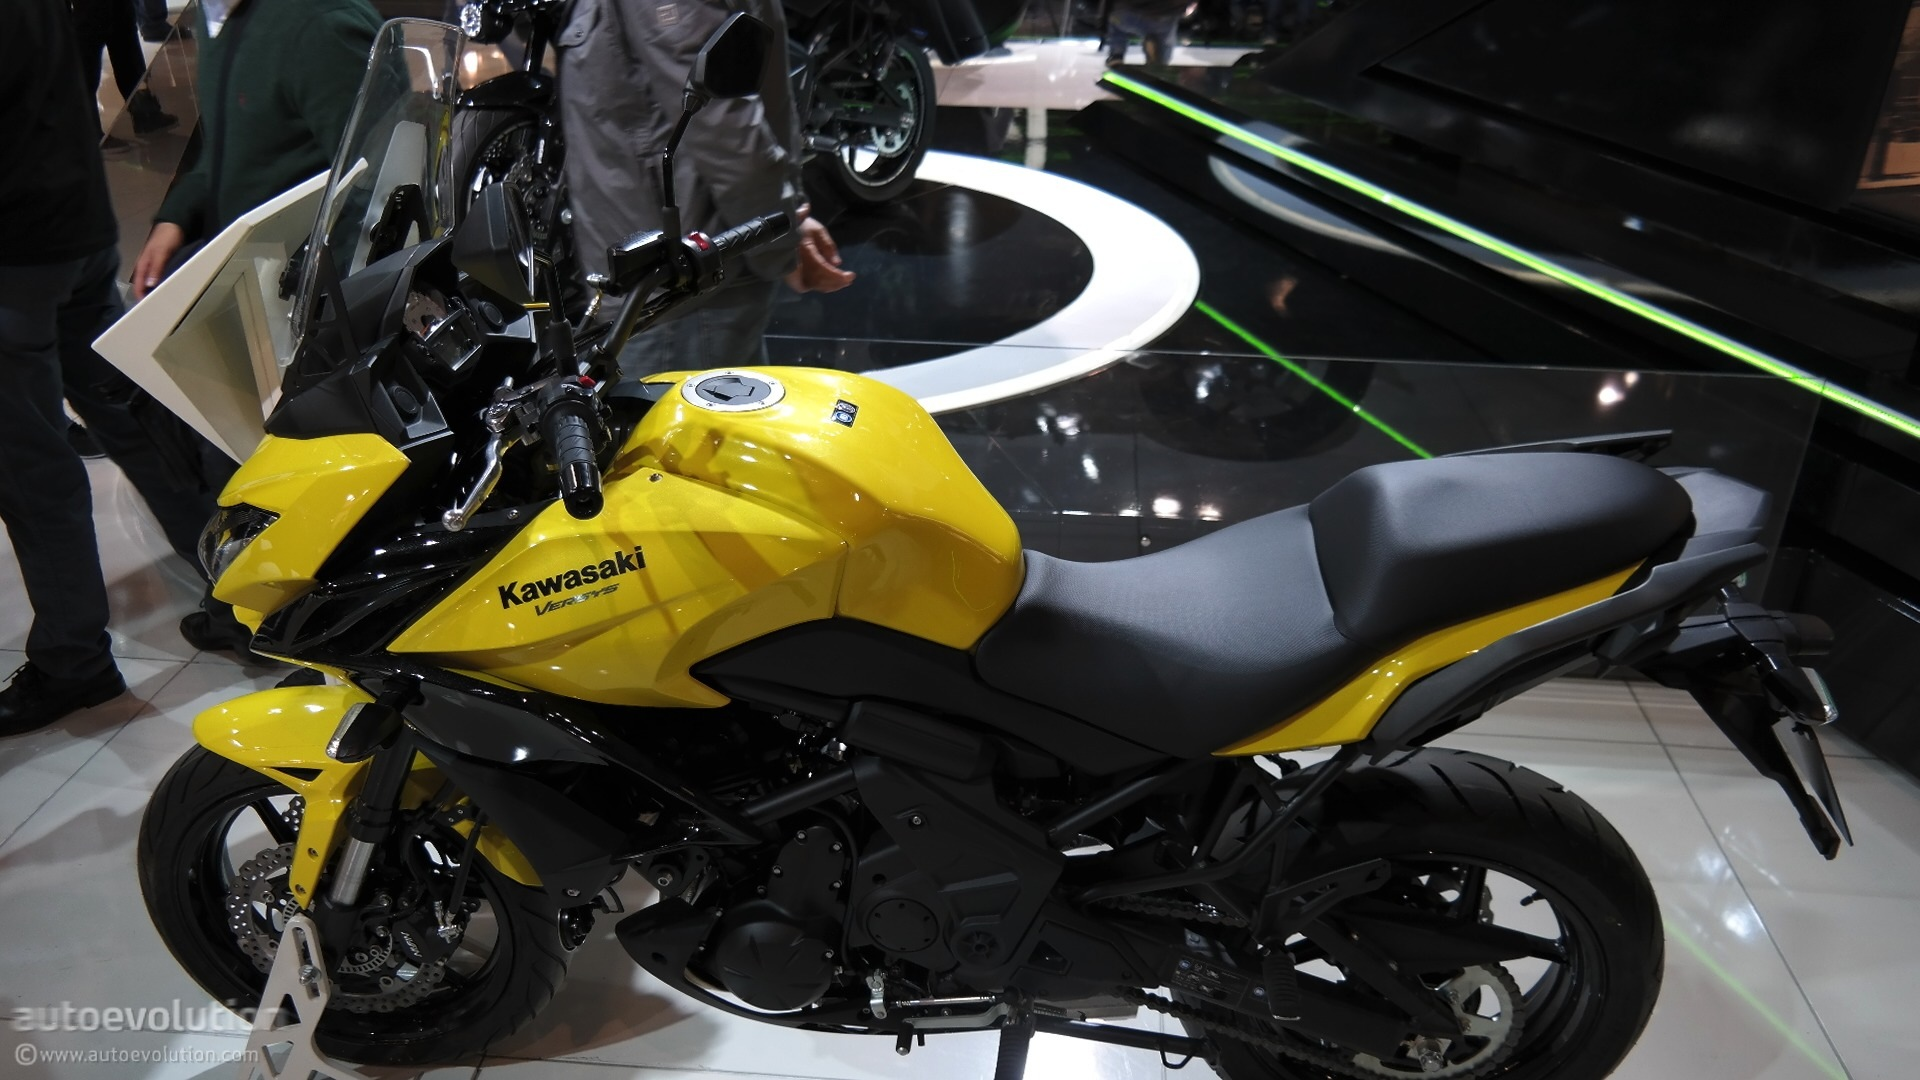 2015 Bmw 750li >> 2015 Kawasaki Versys 650 Looks Better in Real Life at EICMA 2014 [Live Photos] - autoevolution